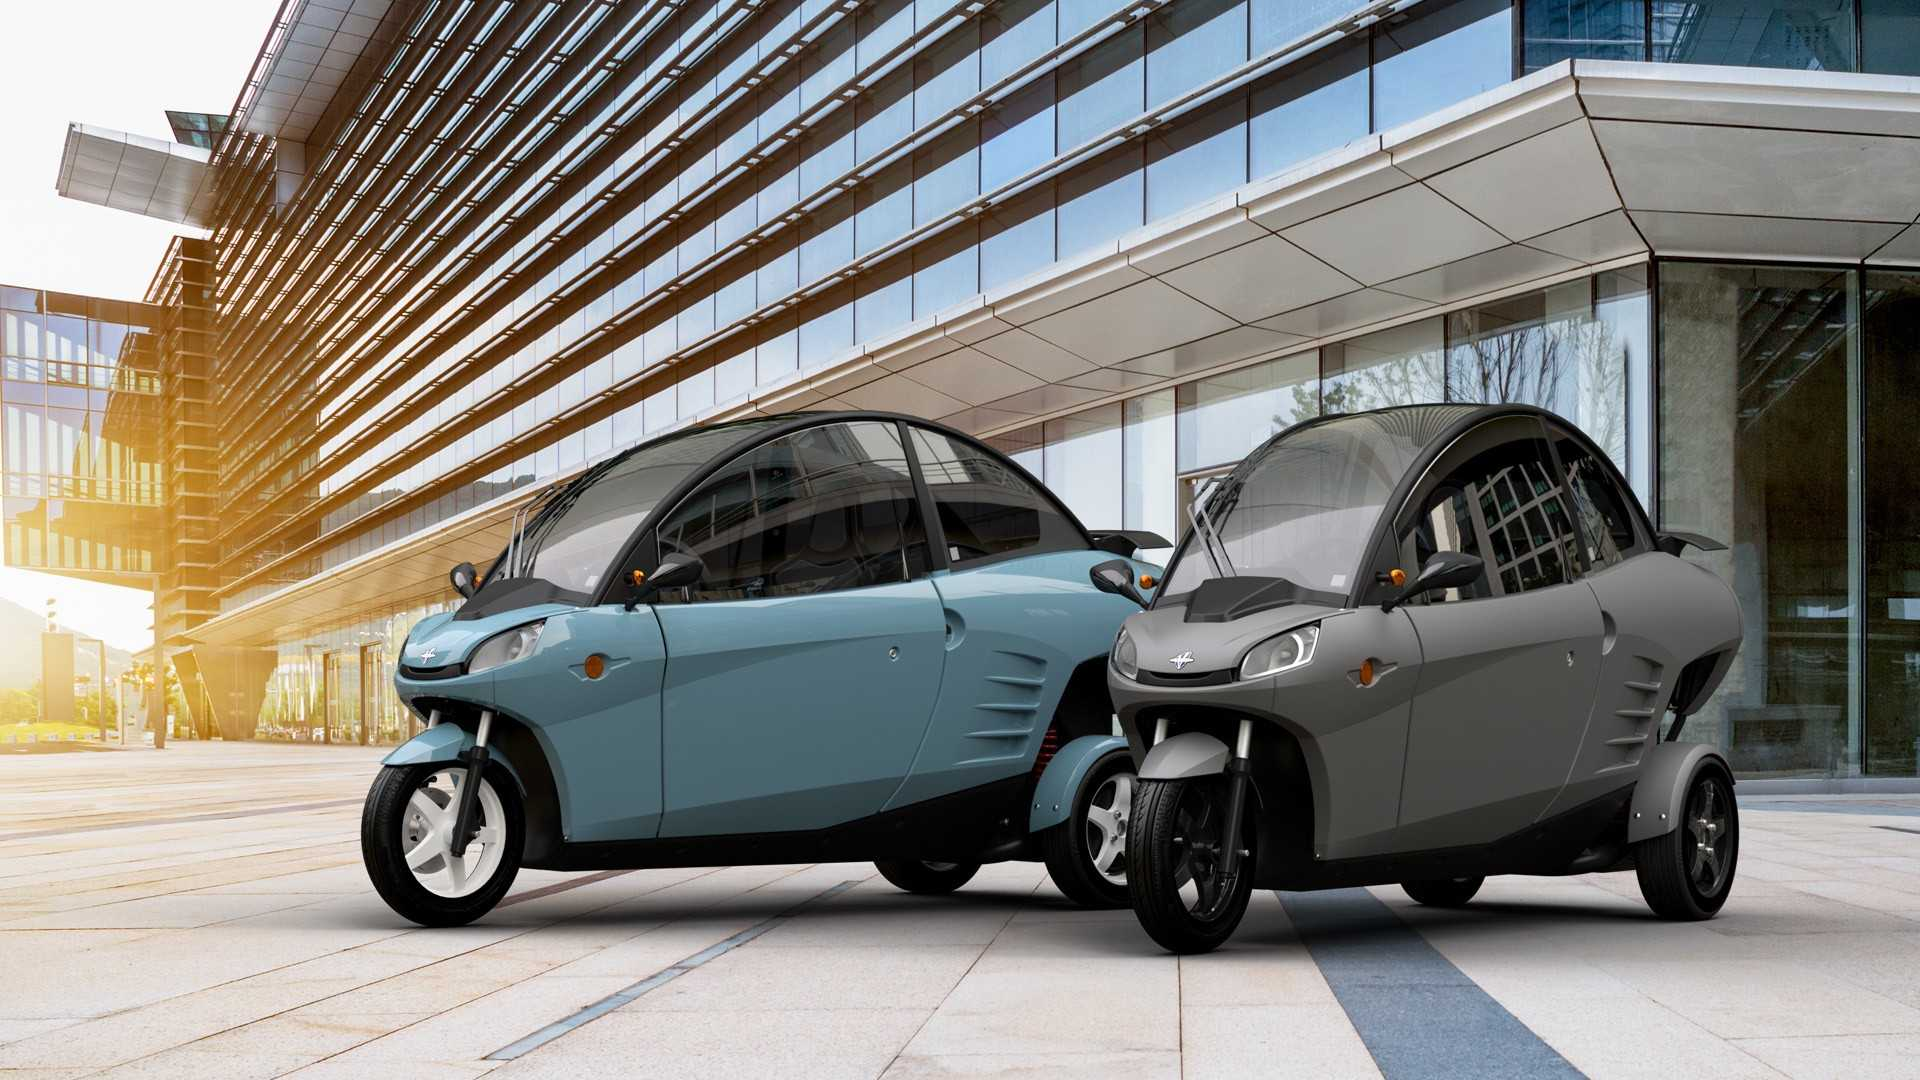 https://cdn.motor1.com/images/mgl/9noW0/s1/carver-will-start-delivering-its-electric-leaning-machine-in-september.jpg